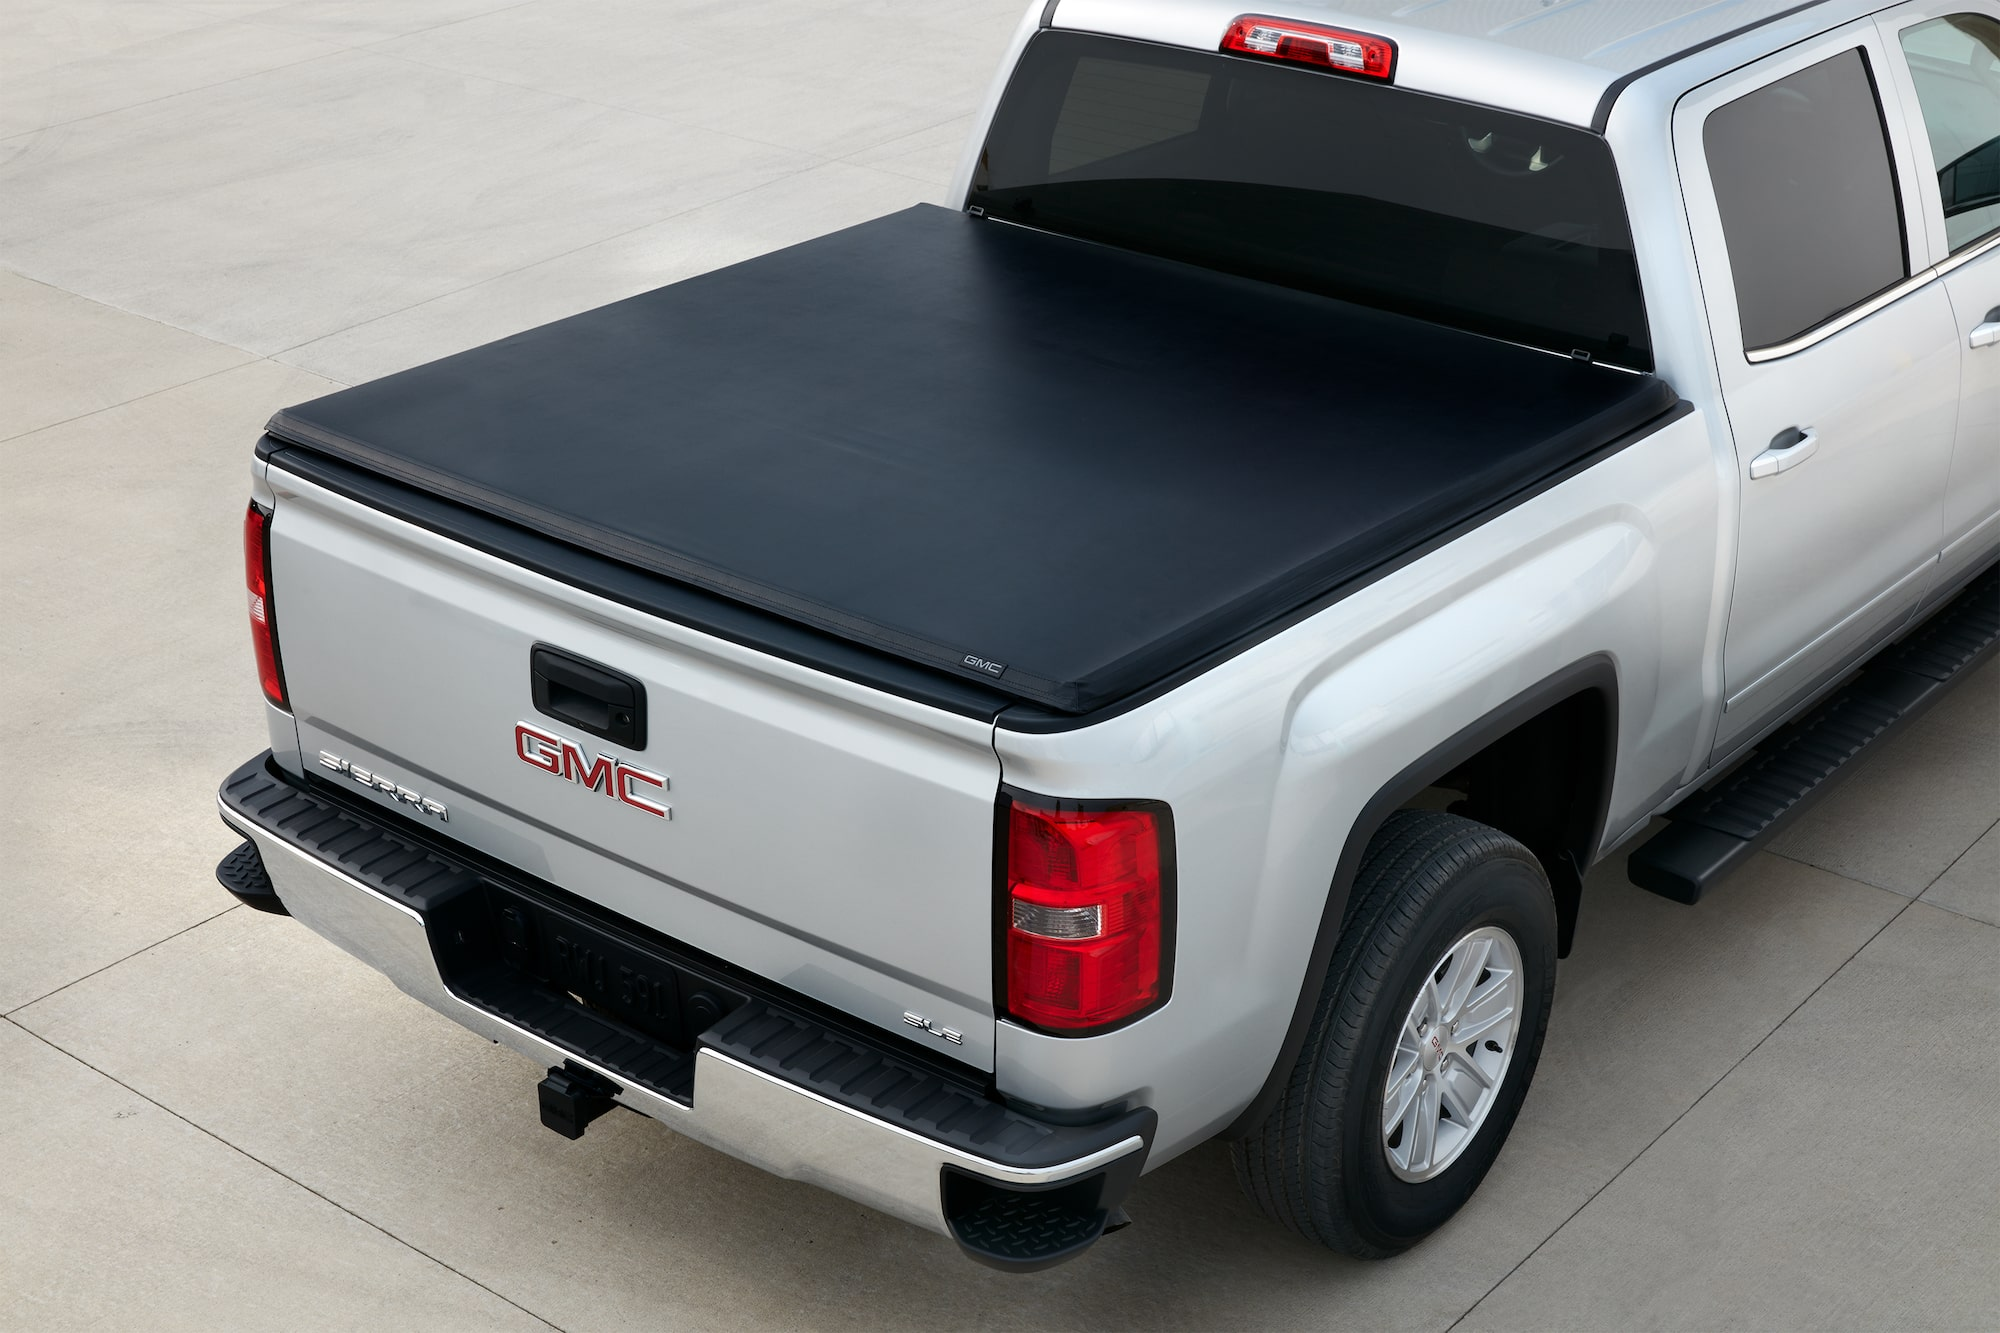 hight resolution of gmc life tonneau cover roll up cover